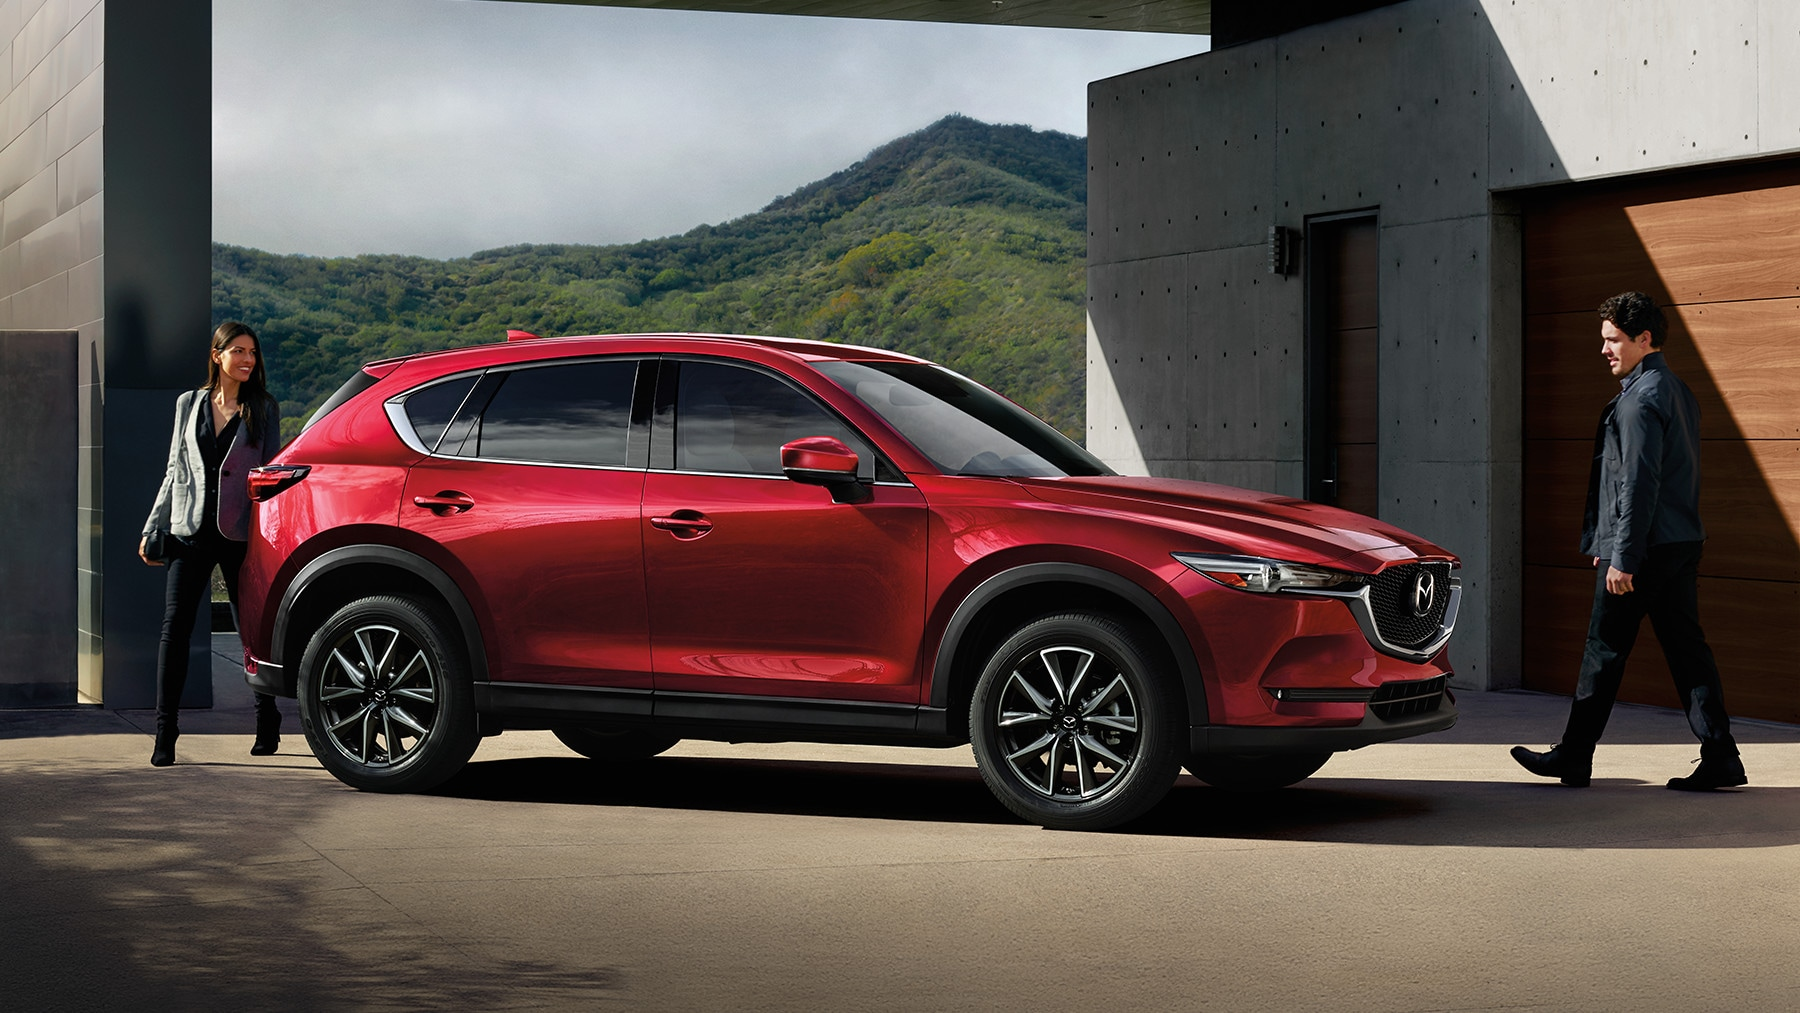 cars gt review touring mazda grand test awd side first cx